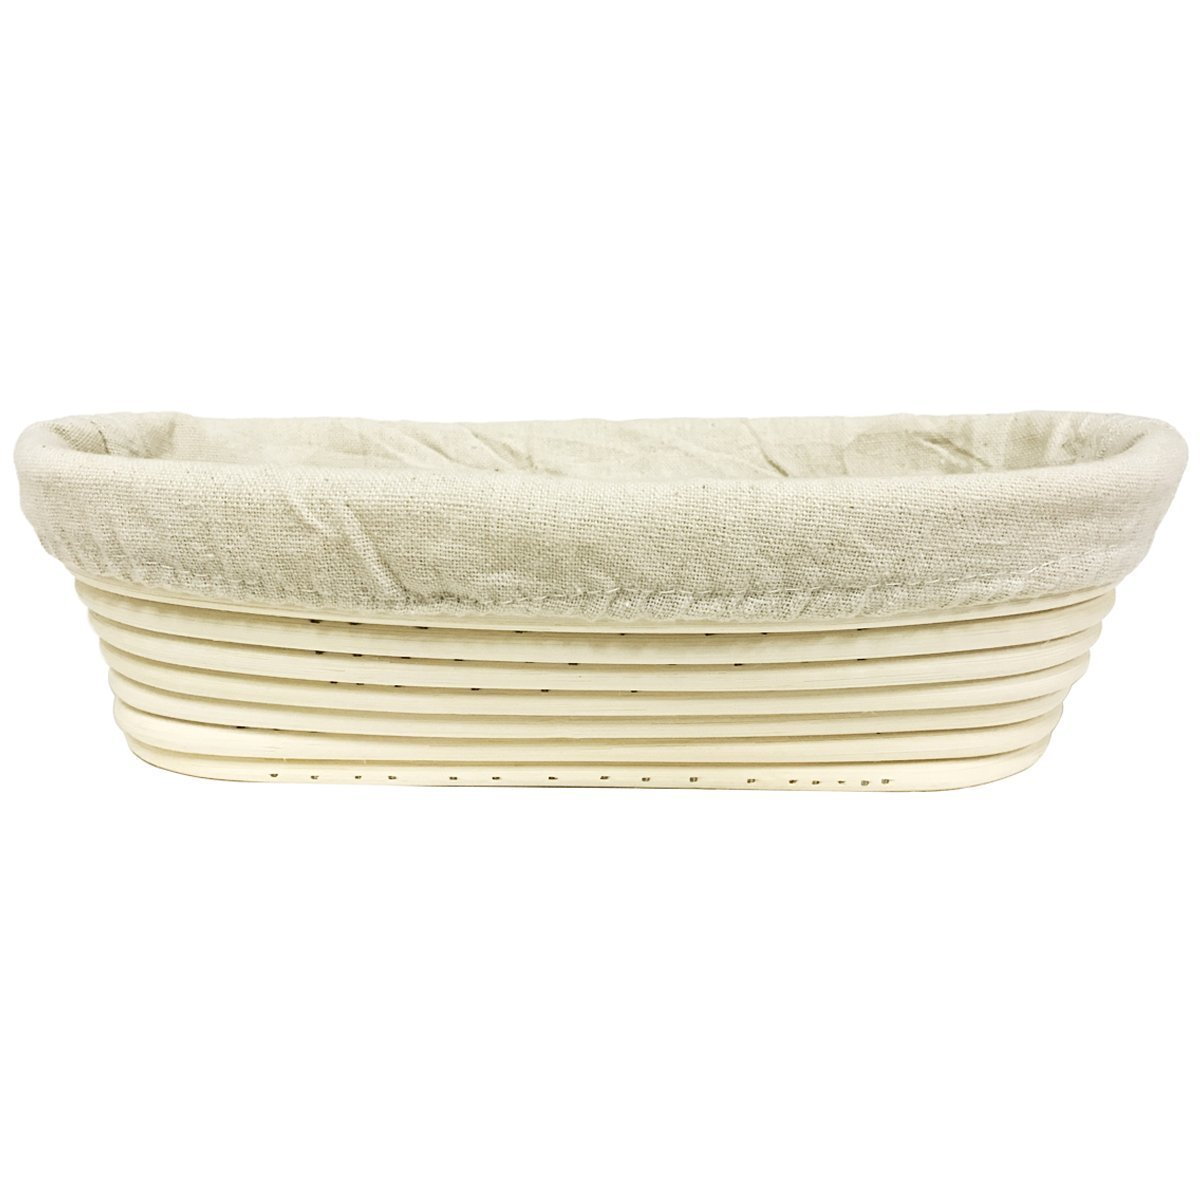 Agile-shop Oval Long Banneton Brotform Bread Dough Proofing Rising Rattan Handmade Basket & Liner (8.2) SYNCHKG107152